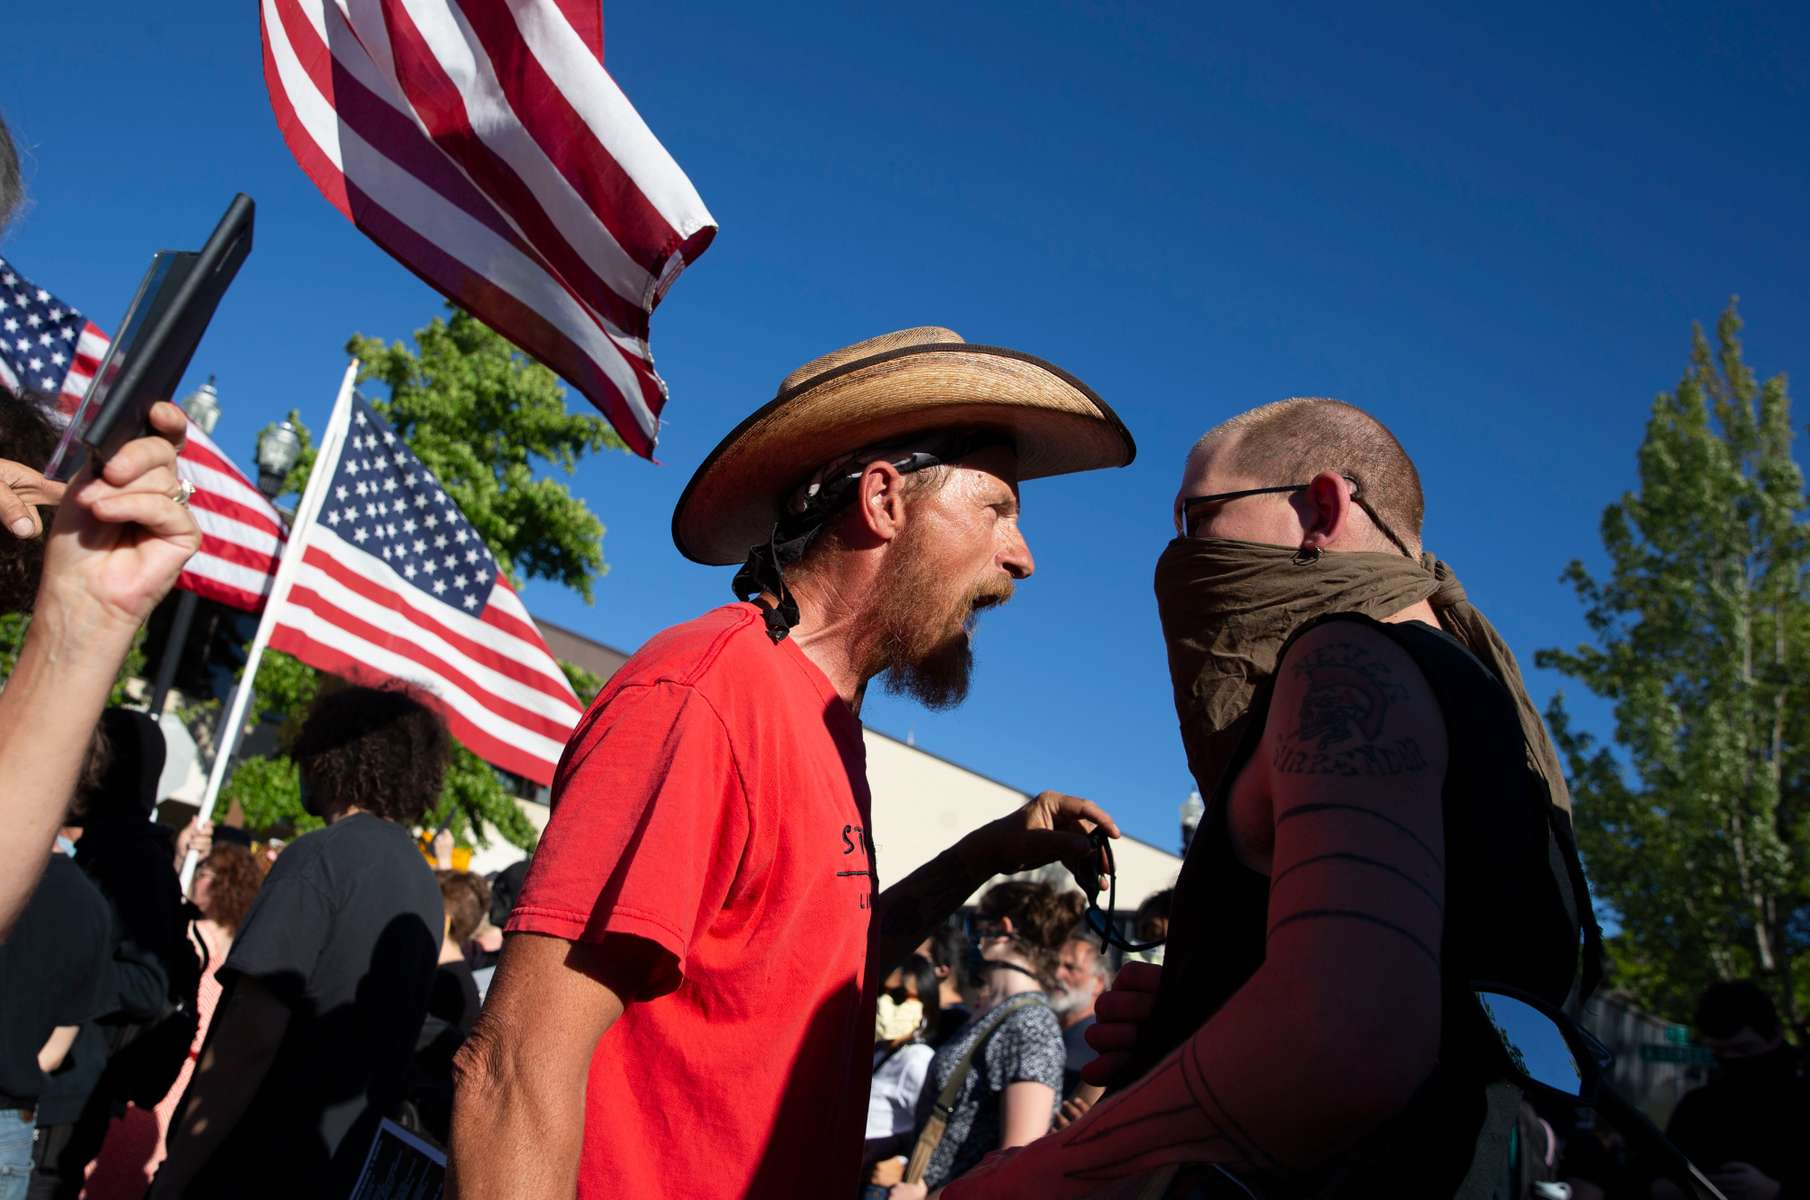 A pro-police demonstrator and a counterprotester engage in conversation after a march supporting law enforcement returned to Springfield City Hall in Springfield, Oregon on June, 22, 2020.